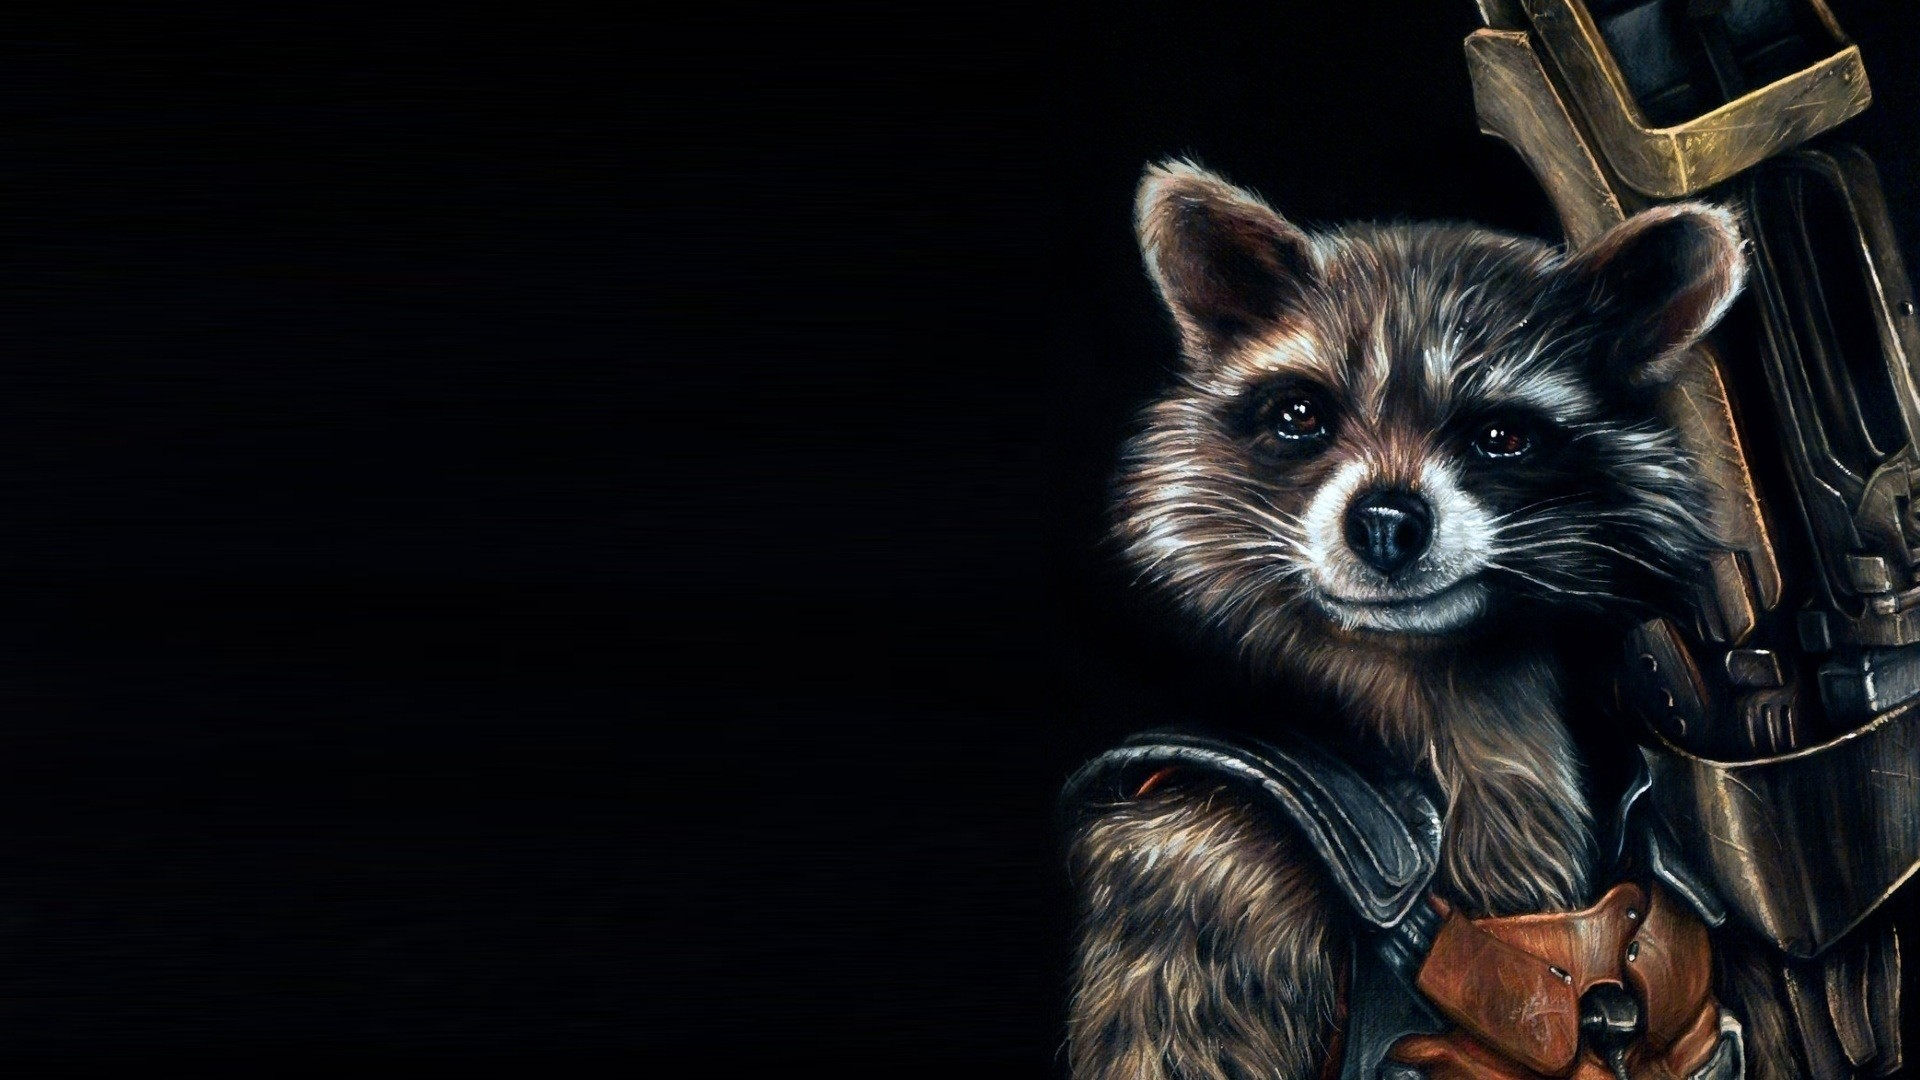 1920x1080  Wallpaper guardians of the galaxy, raccoon, rocket